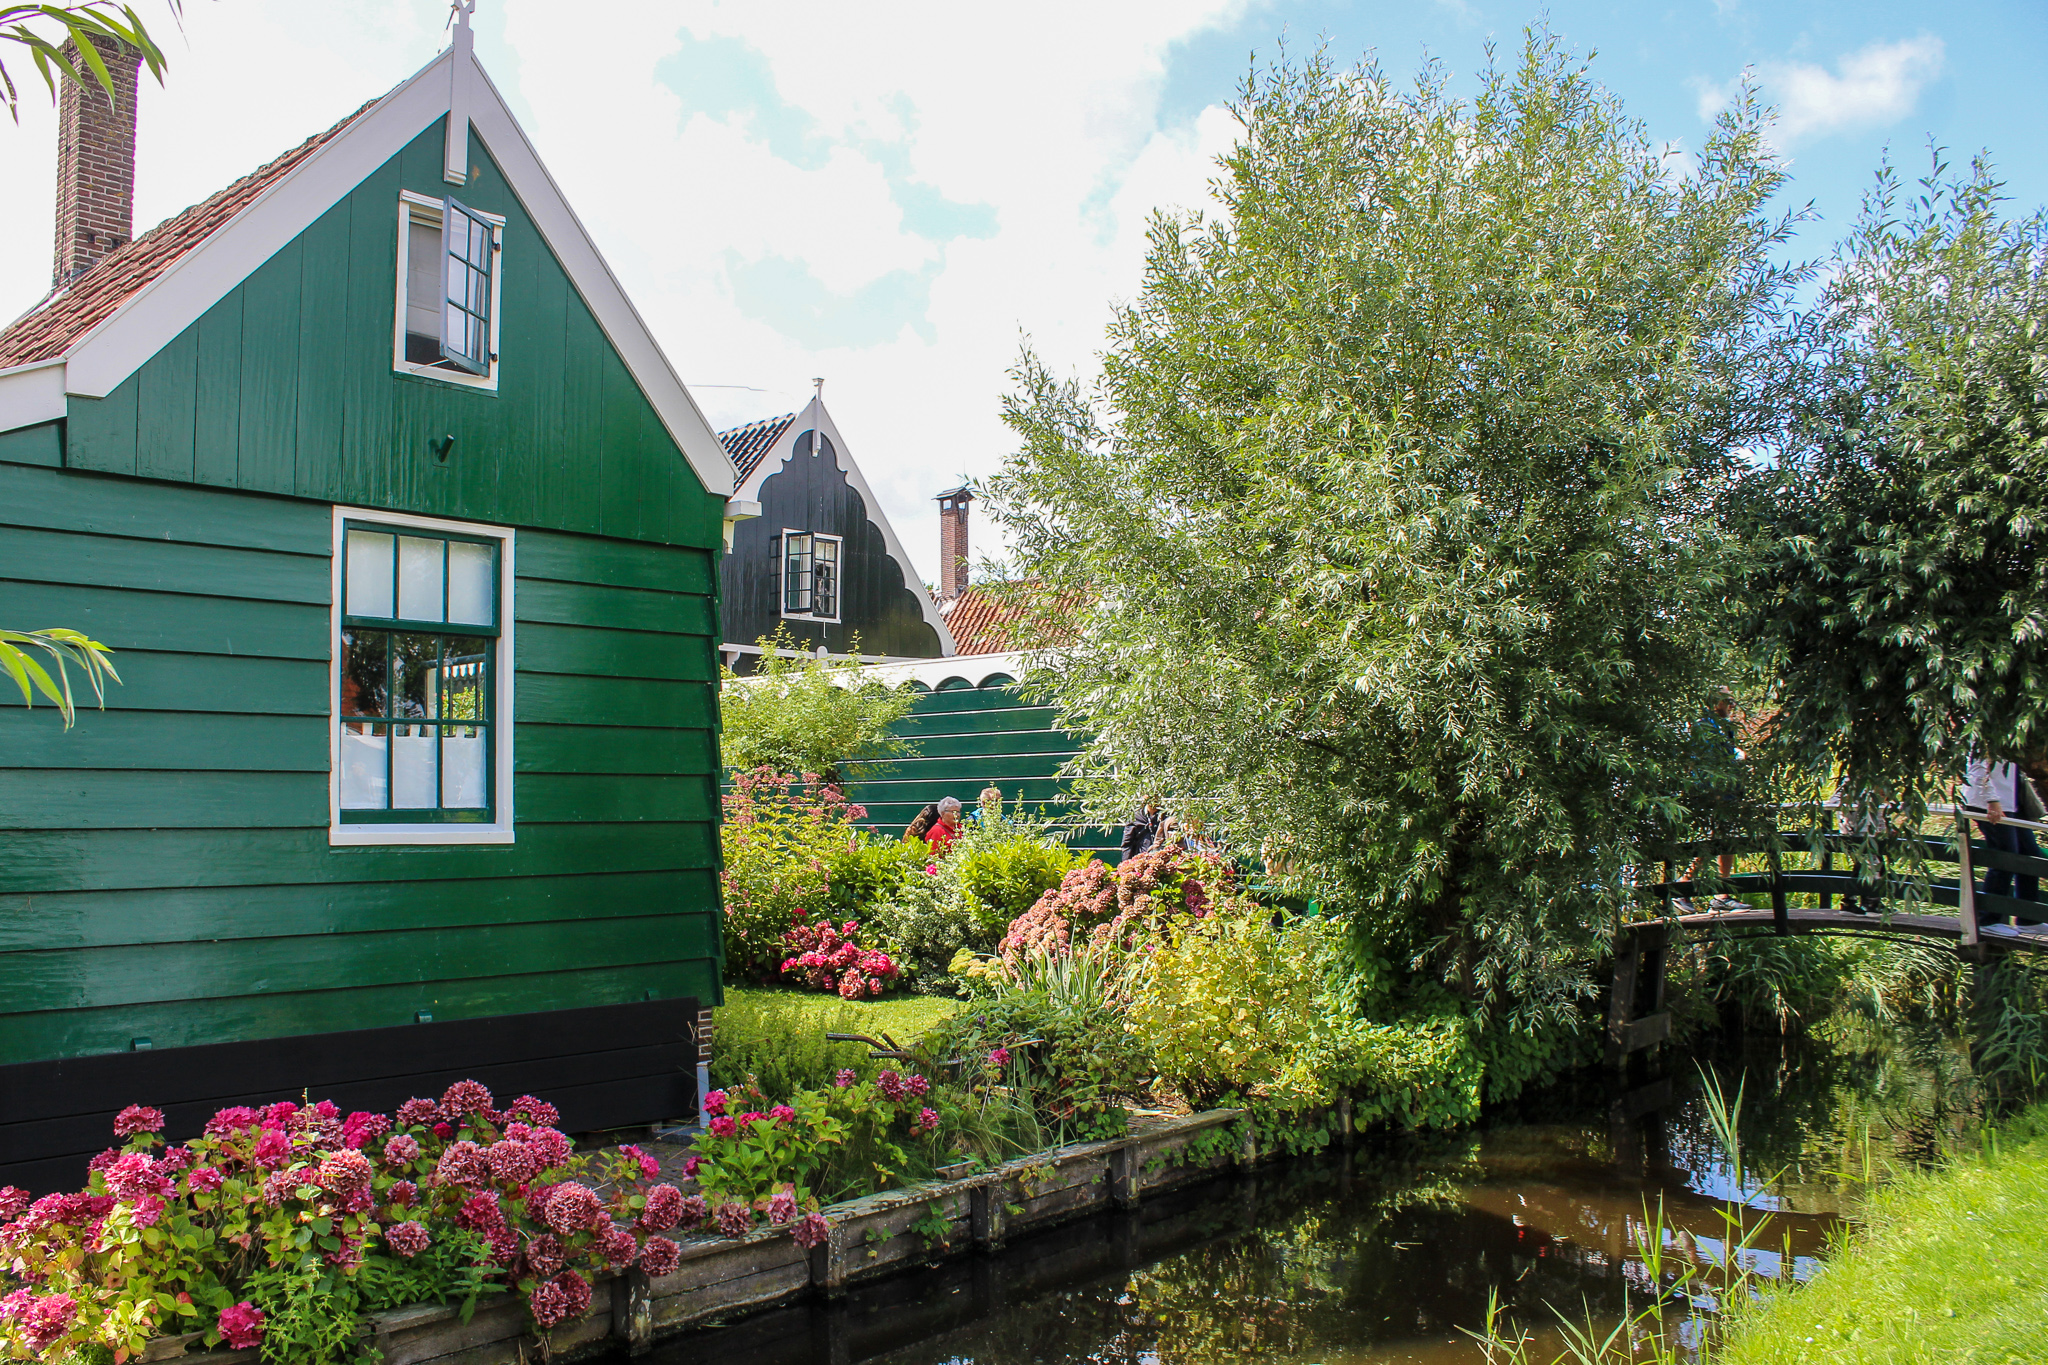 zaanse schans day trip is worth it for these views